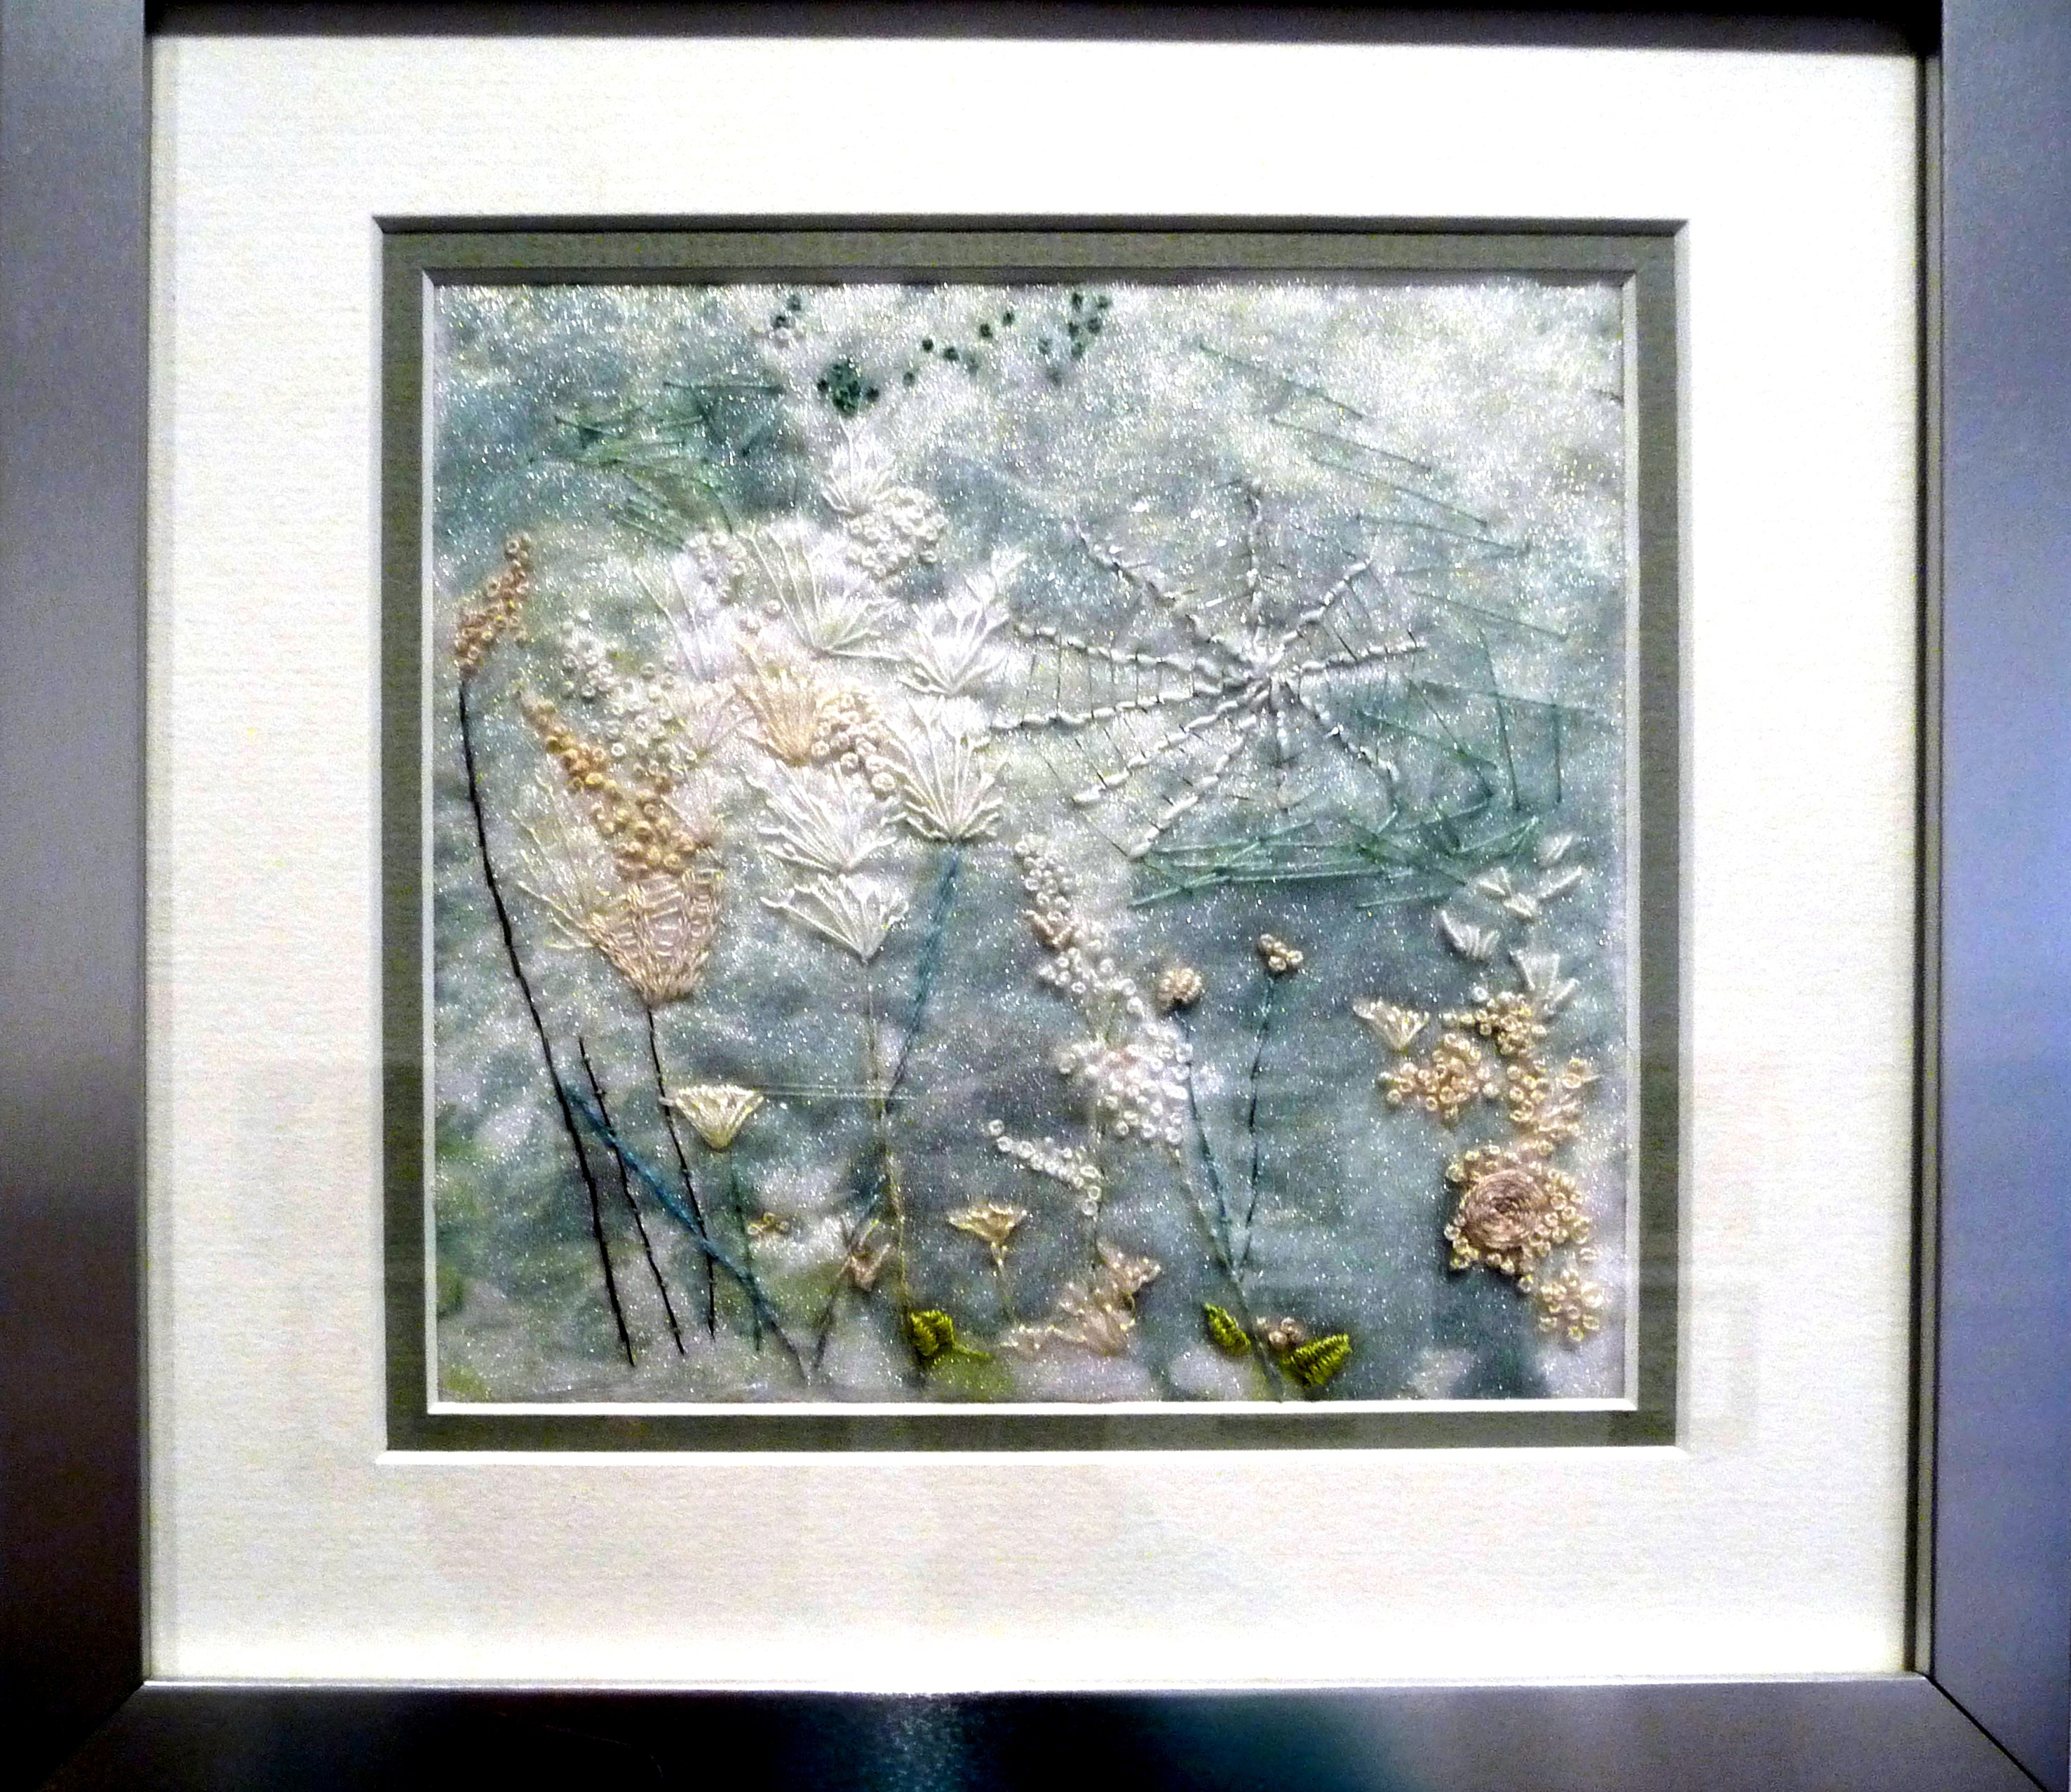 WOODLAND WALK by Ann Heather, hand stitched on to photographic image